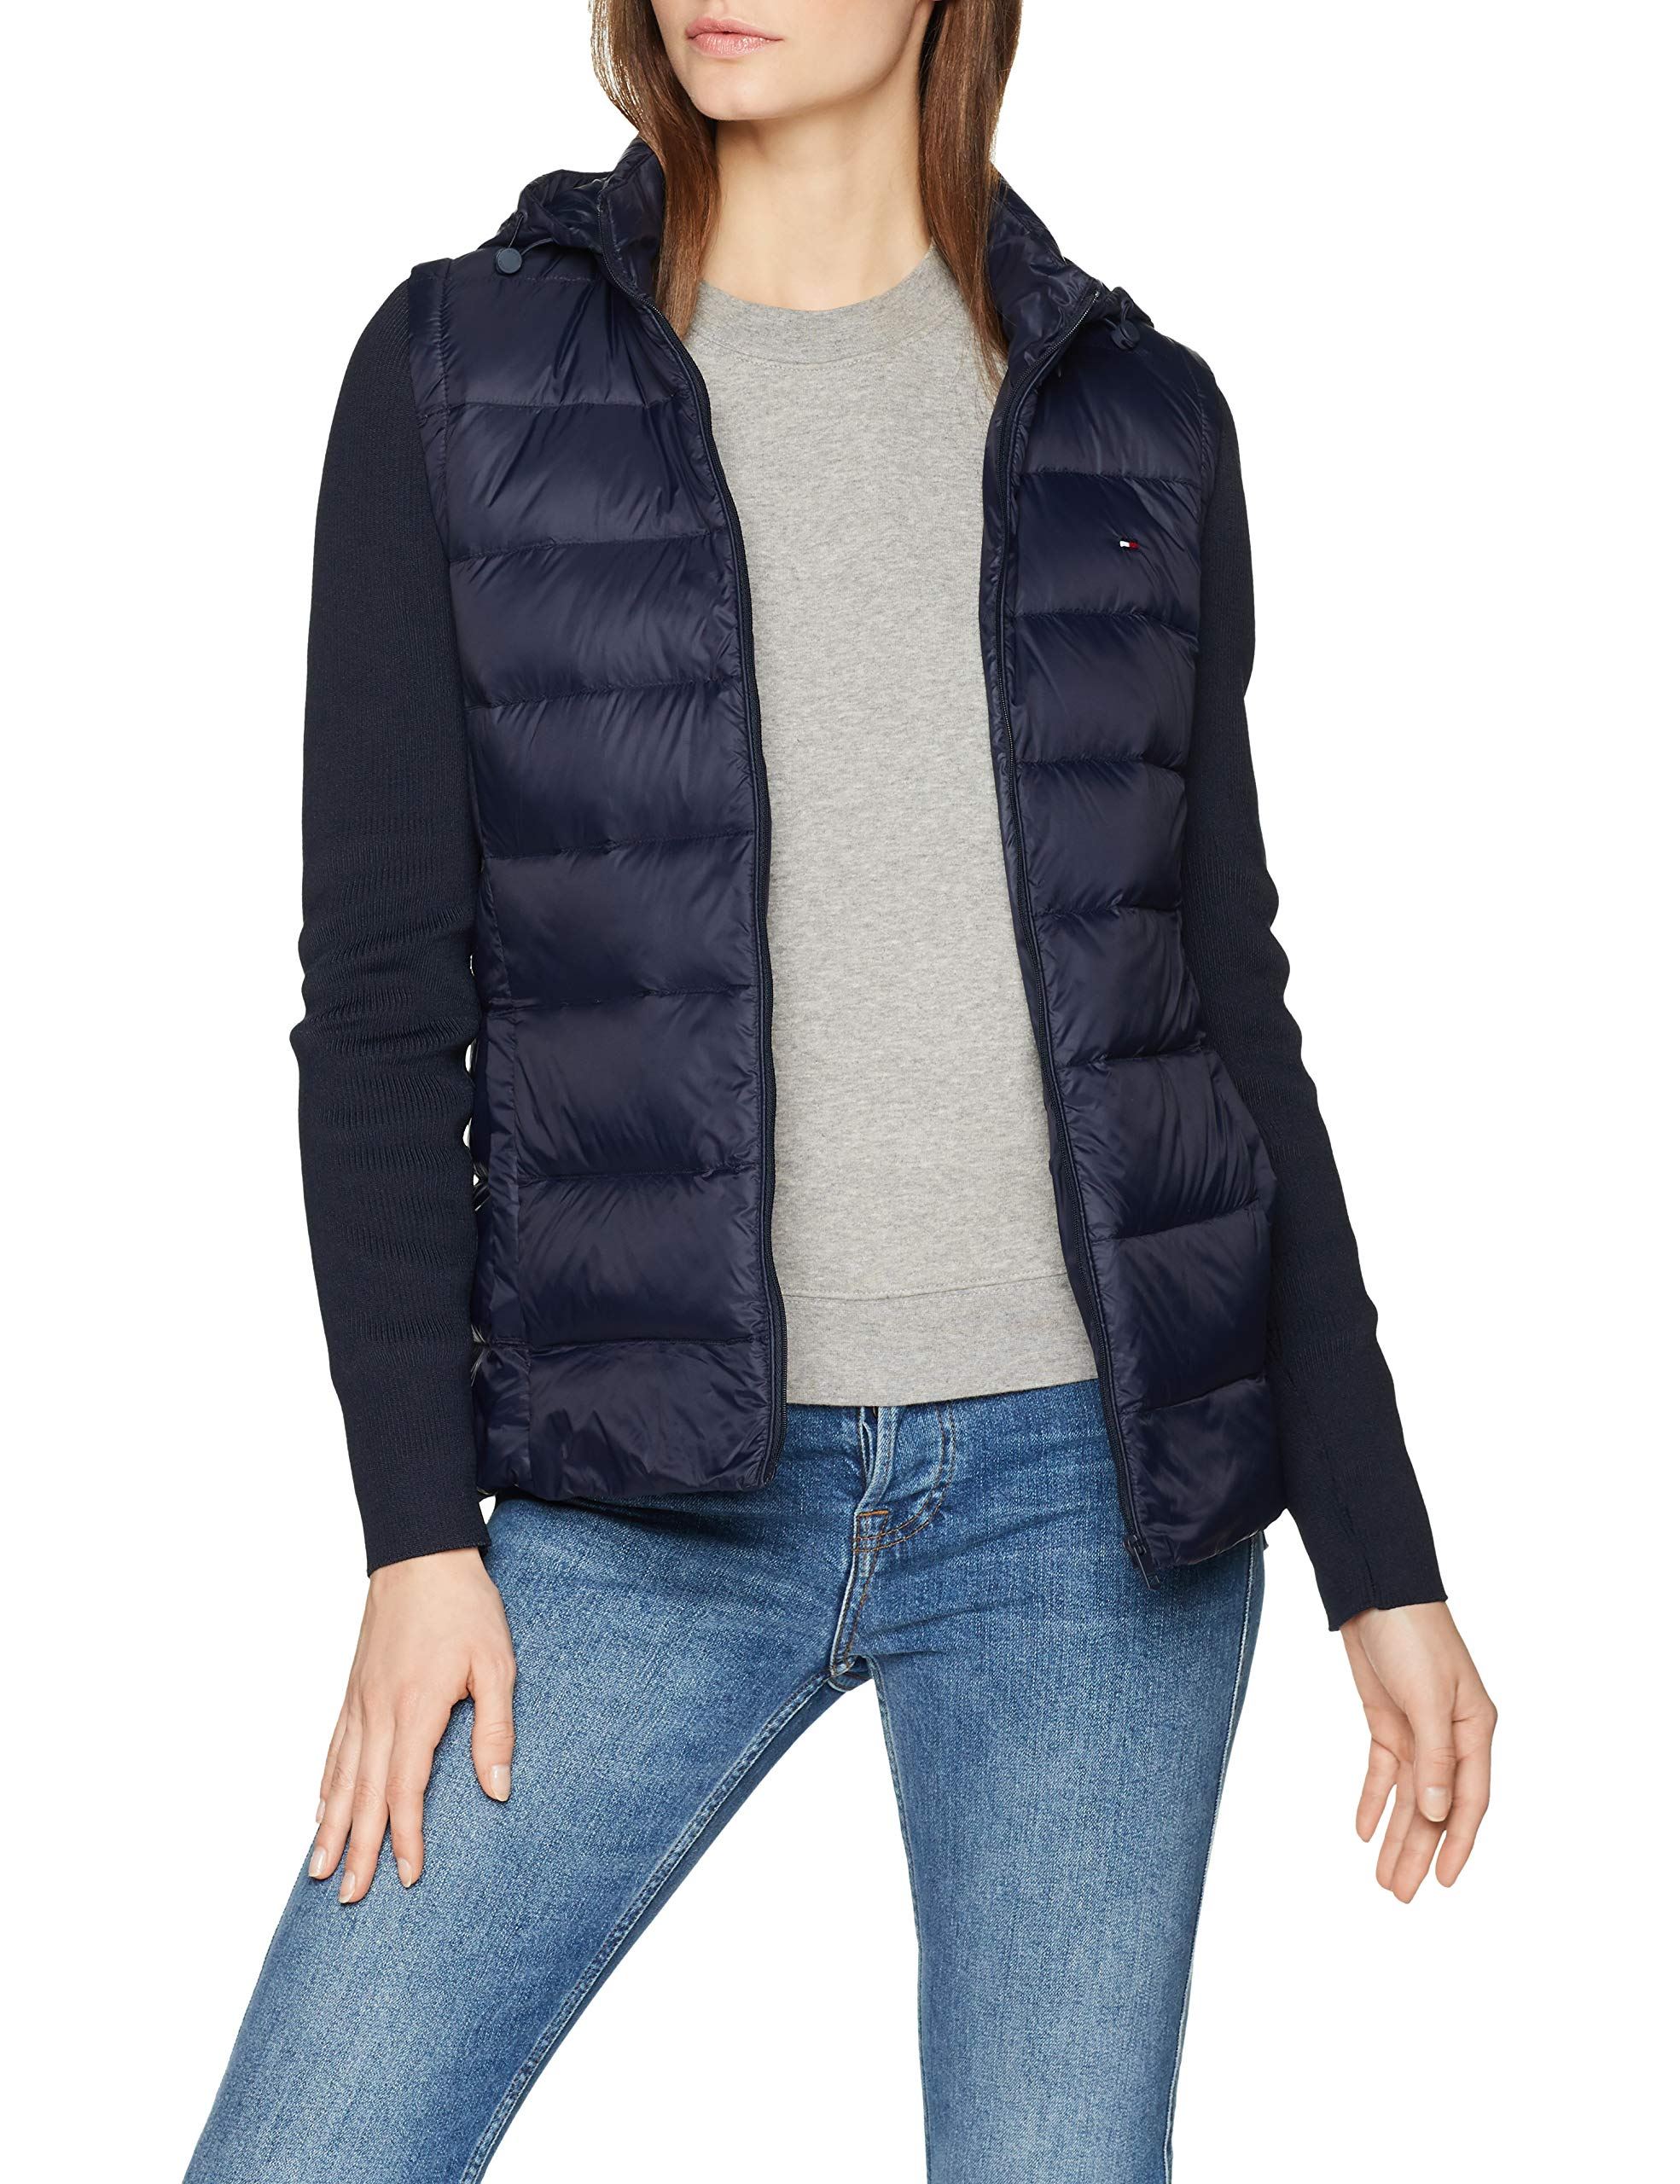 the latest 379c0 530f8 Tommy Hilfiger Damen Daunenjacke Jacke New Isaac Combo LW DOWN JKT  WW0WW24008, Gr. X-Small (Herstellergröße: XS), Blau (Midnight 403)